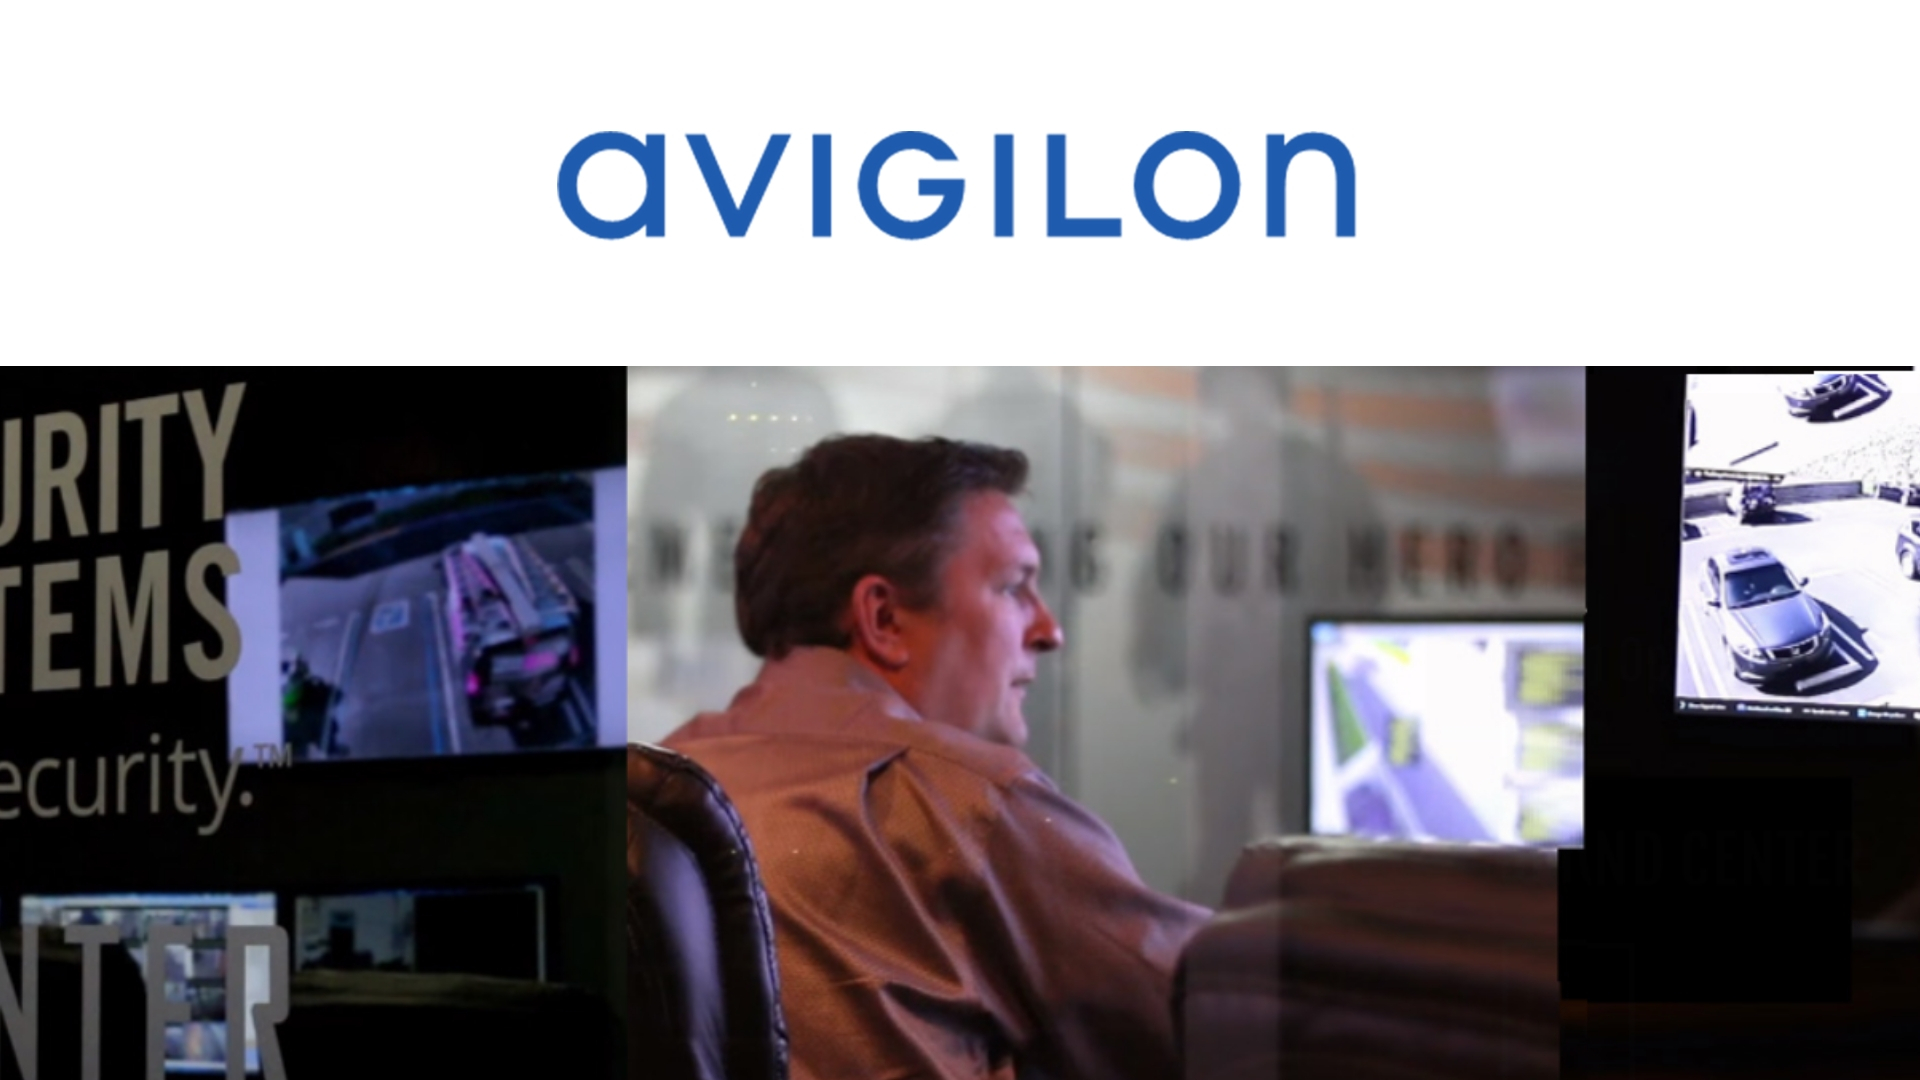 Avigilion_Video_Control_JMG